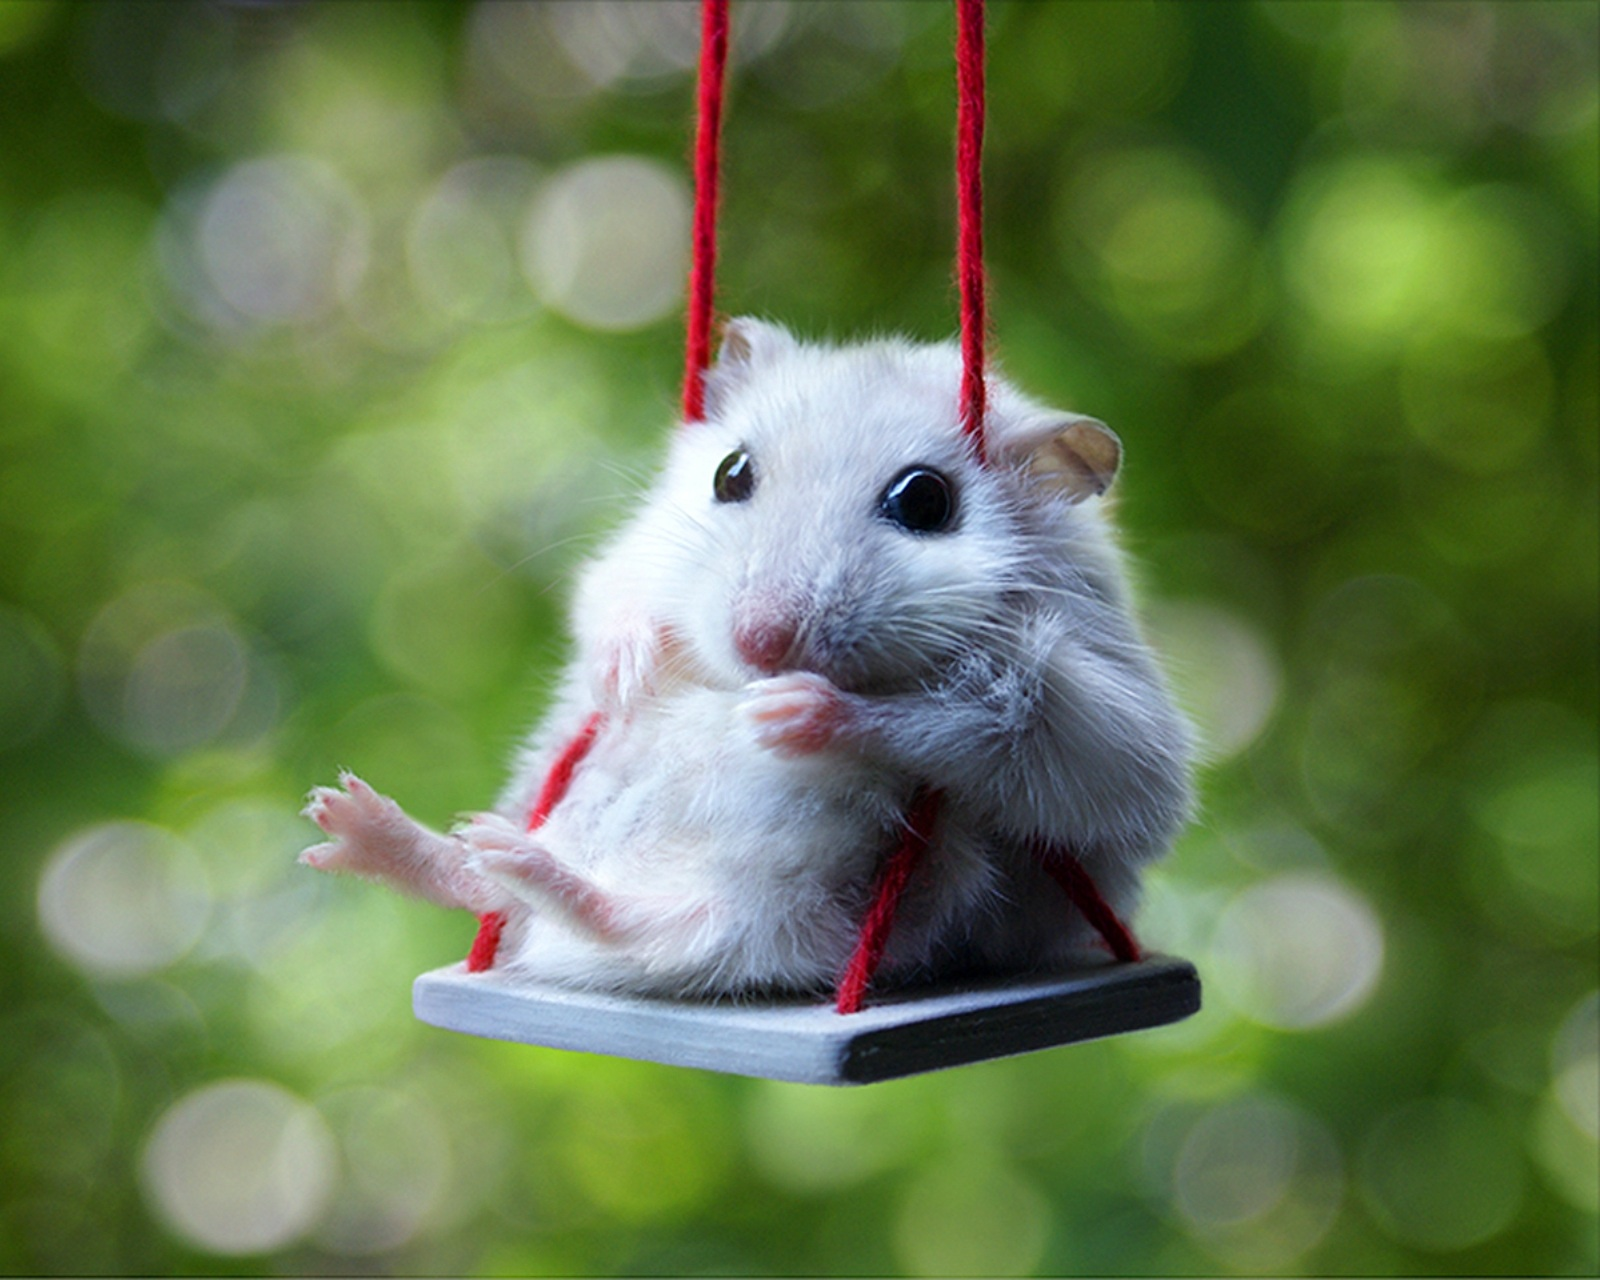 Cute Hamsters Wallpapers cute white hamster wallpaper computer 1600x1280